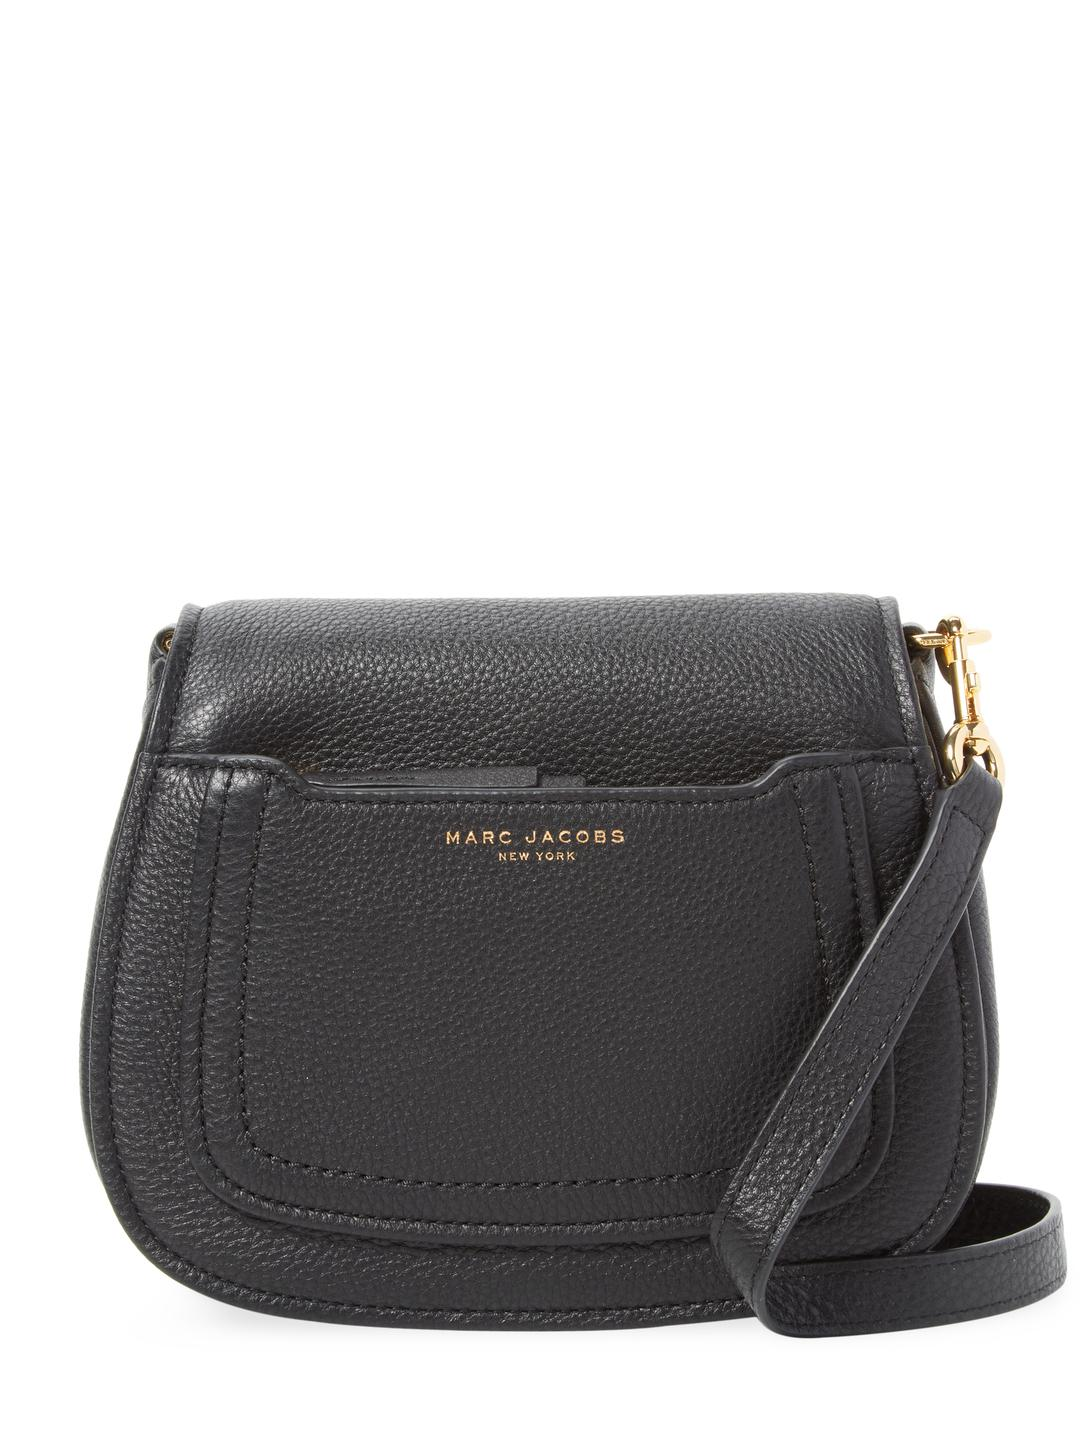 Pre-owned - Saddlebag in patent leather Marc Jacobs uoCgtqb